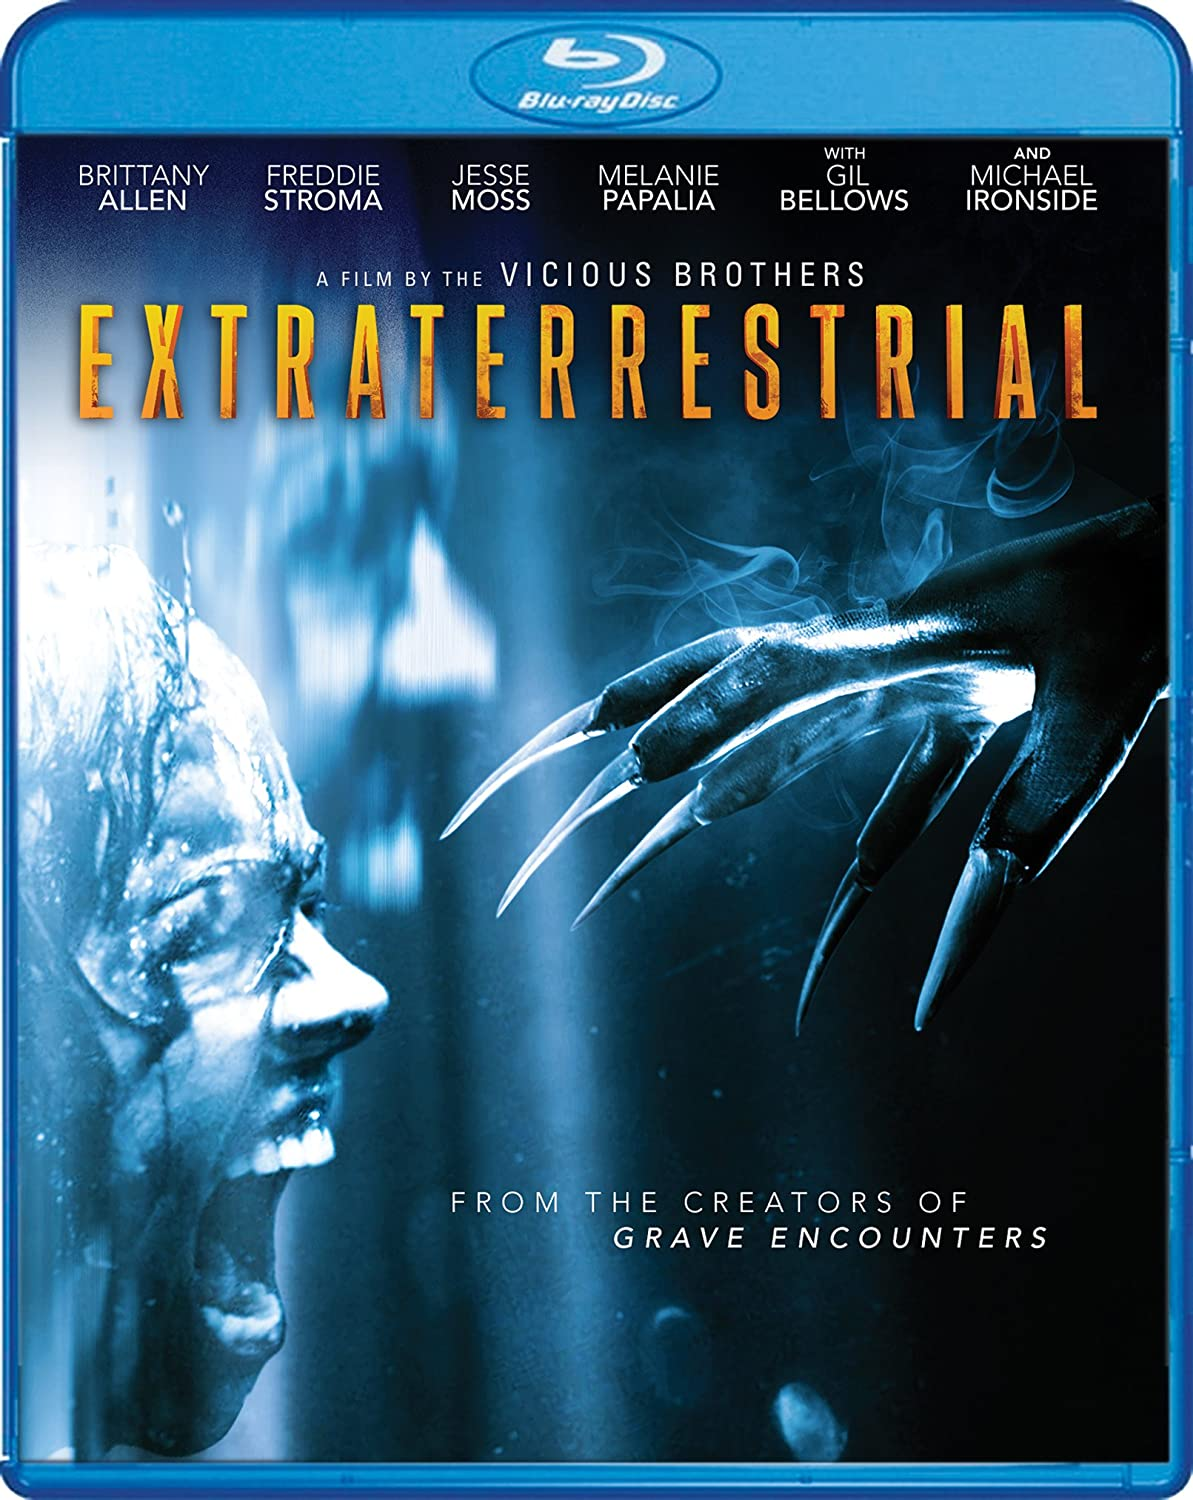 Amazon.com: Extraterrestrial [Blu-ray]: Brittany Allen, Freddie Stroma, The  Vicious Brothers: Movies & TV